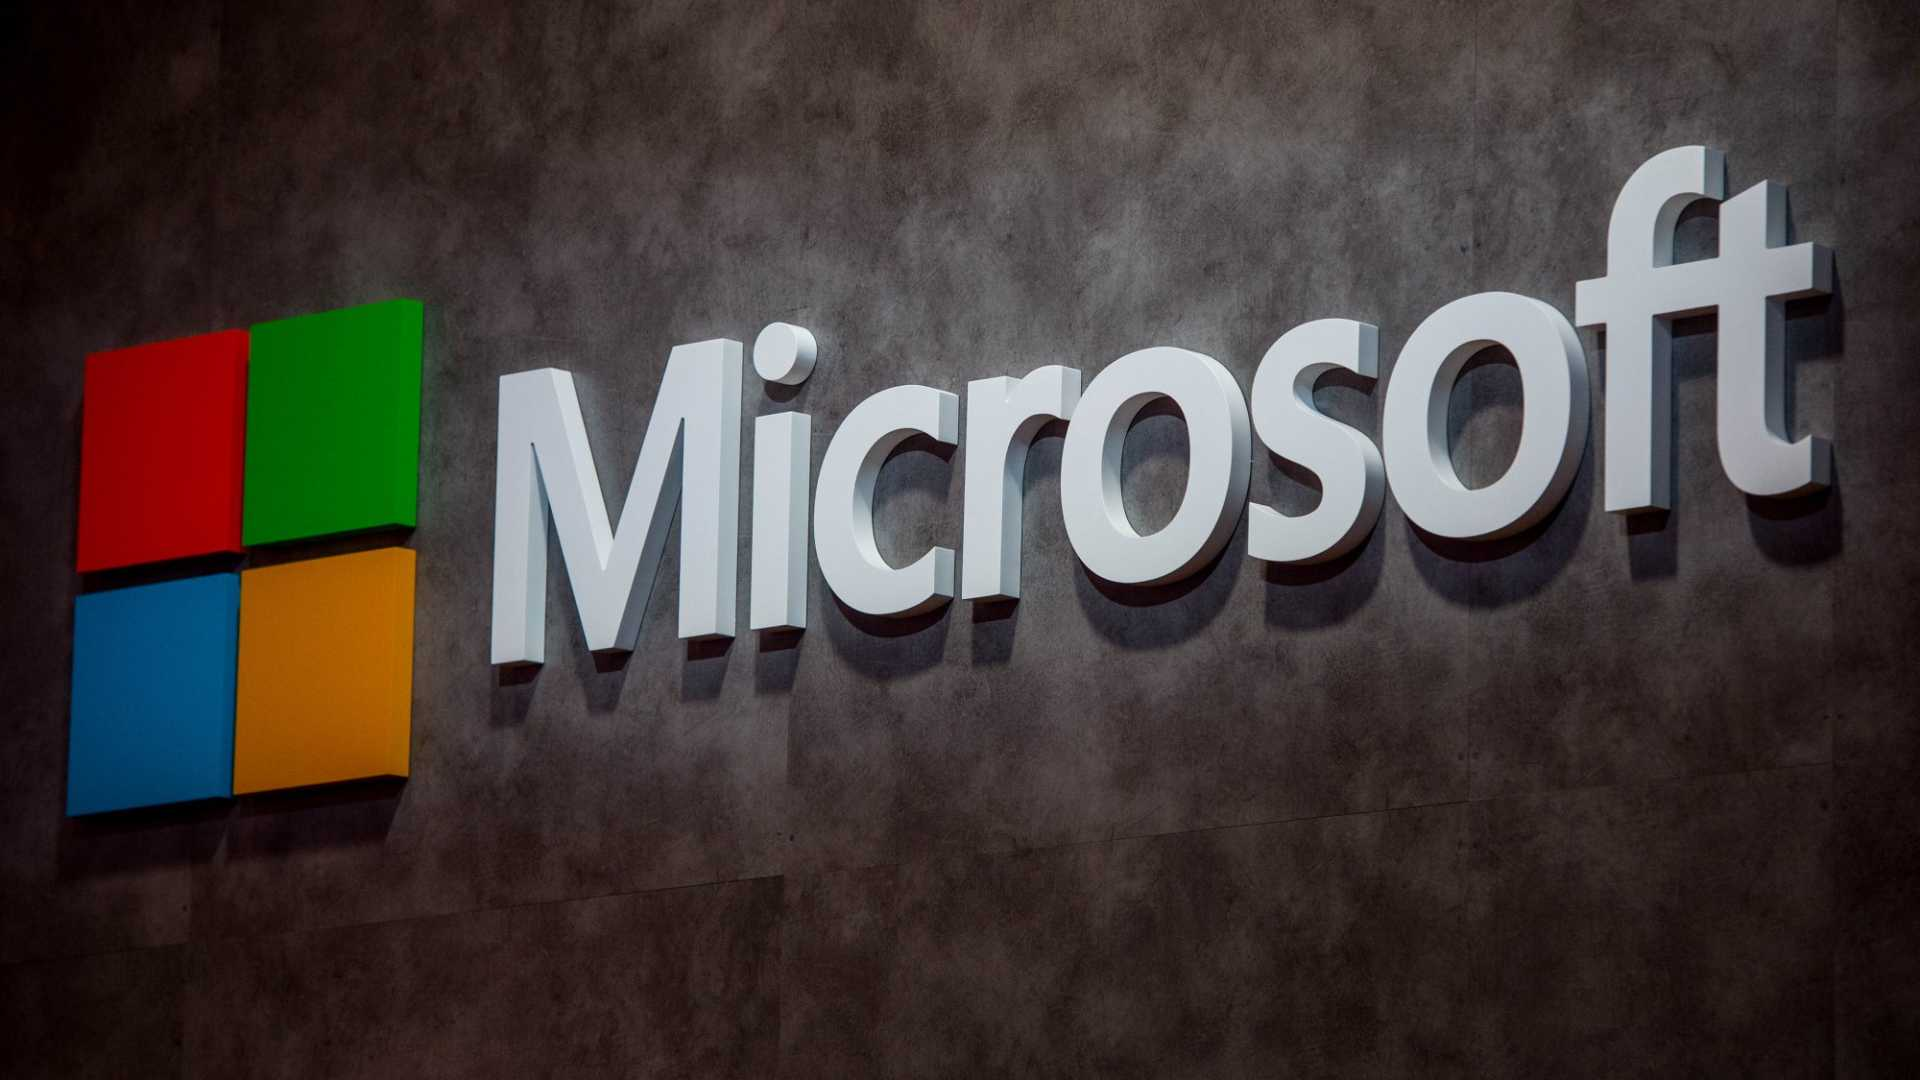 Microsoft Is Getting a Big Boost From Cloud Computing